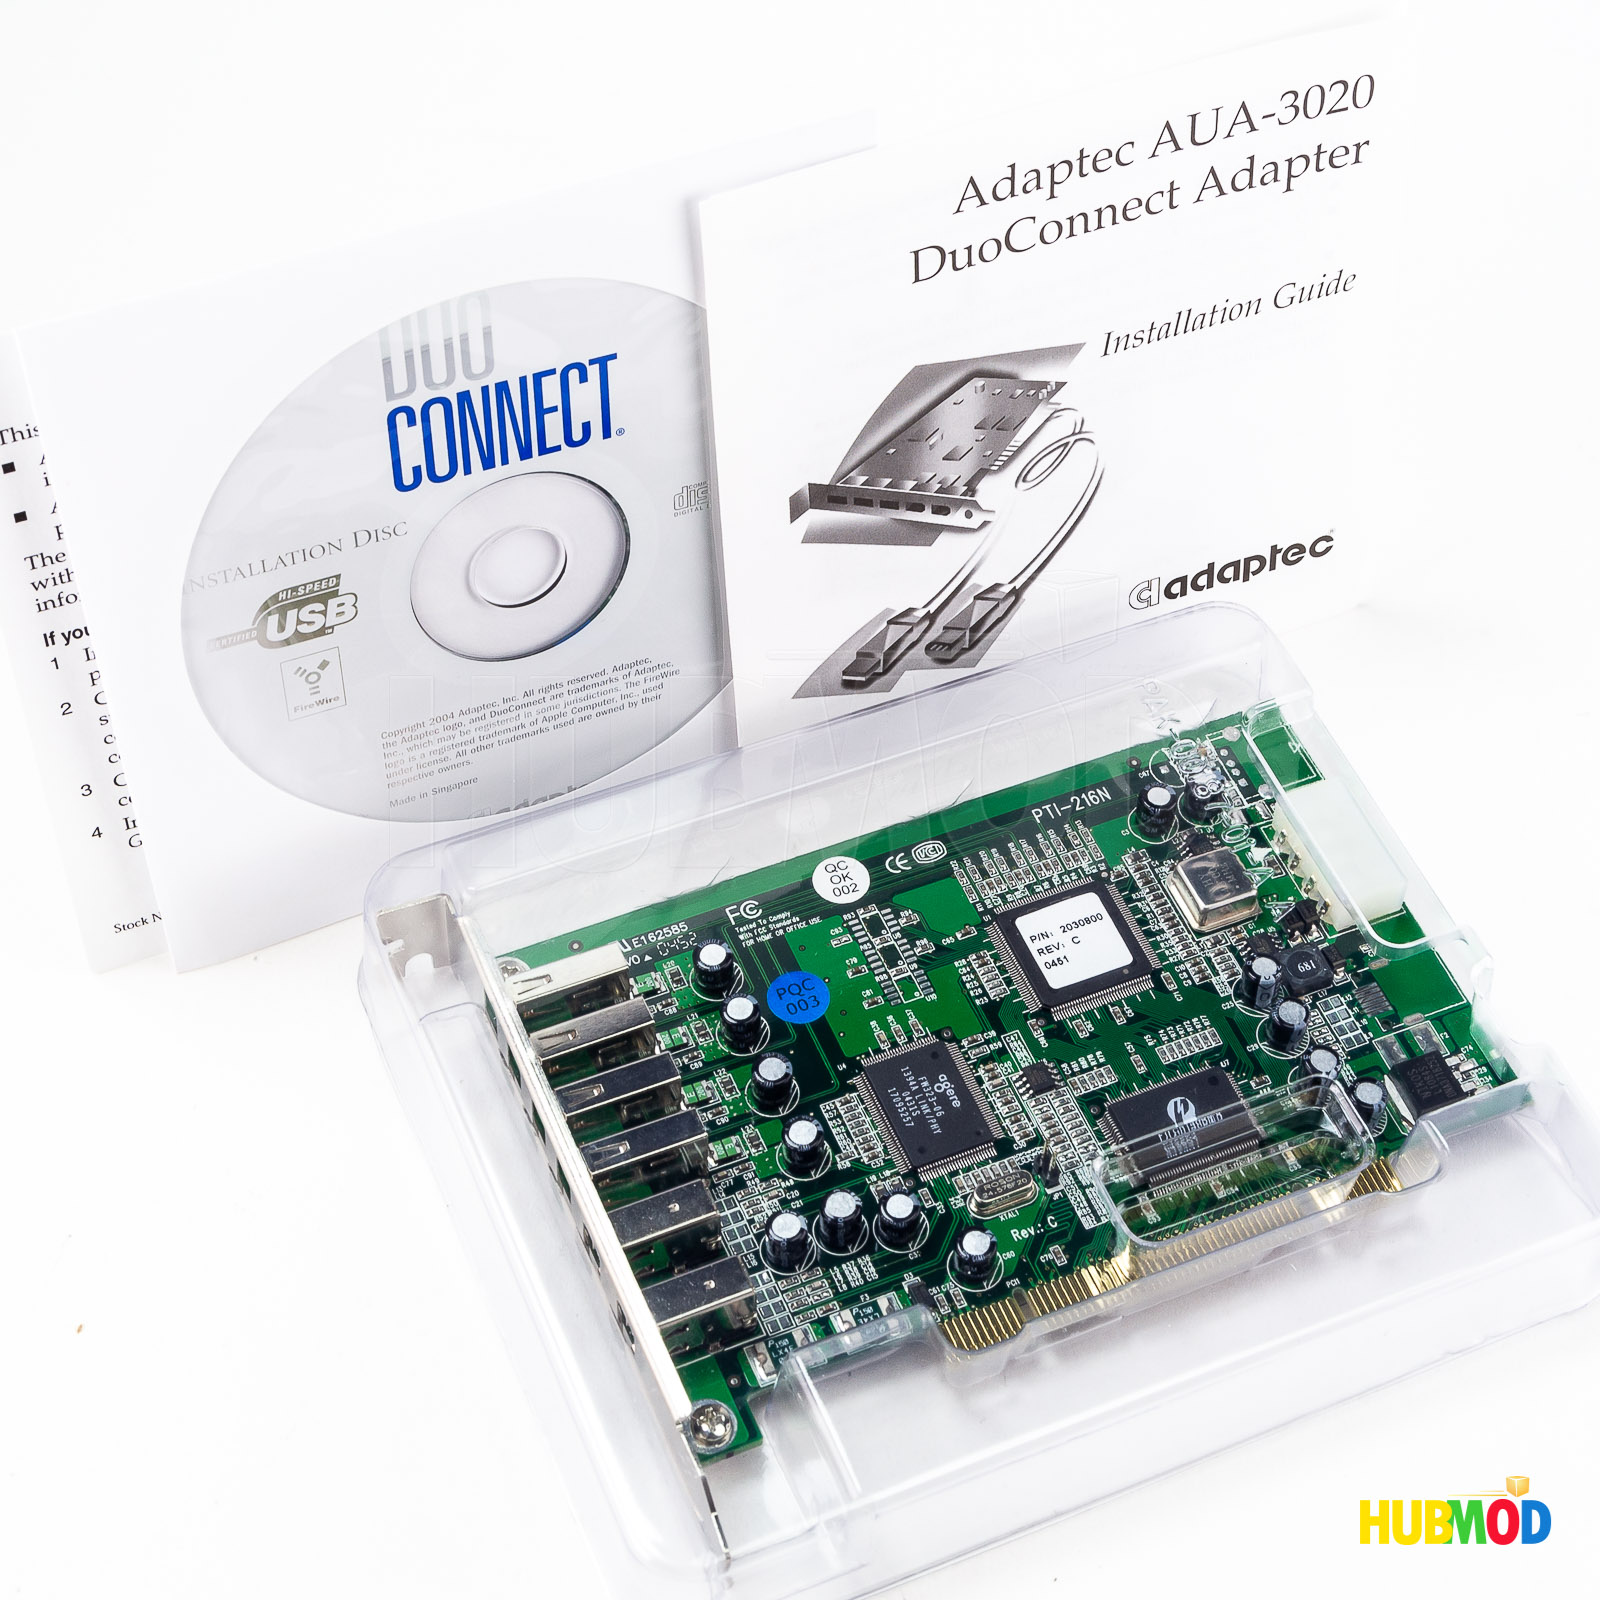 DOWNLOAD DRIVERS: ADAPTEC AUA-3020